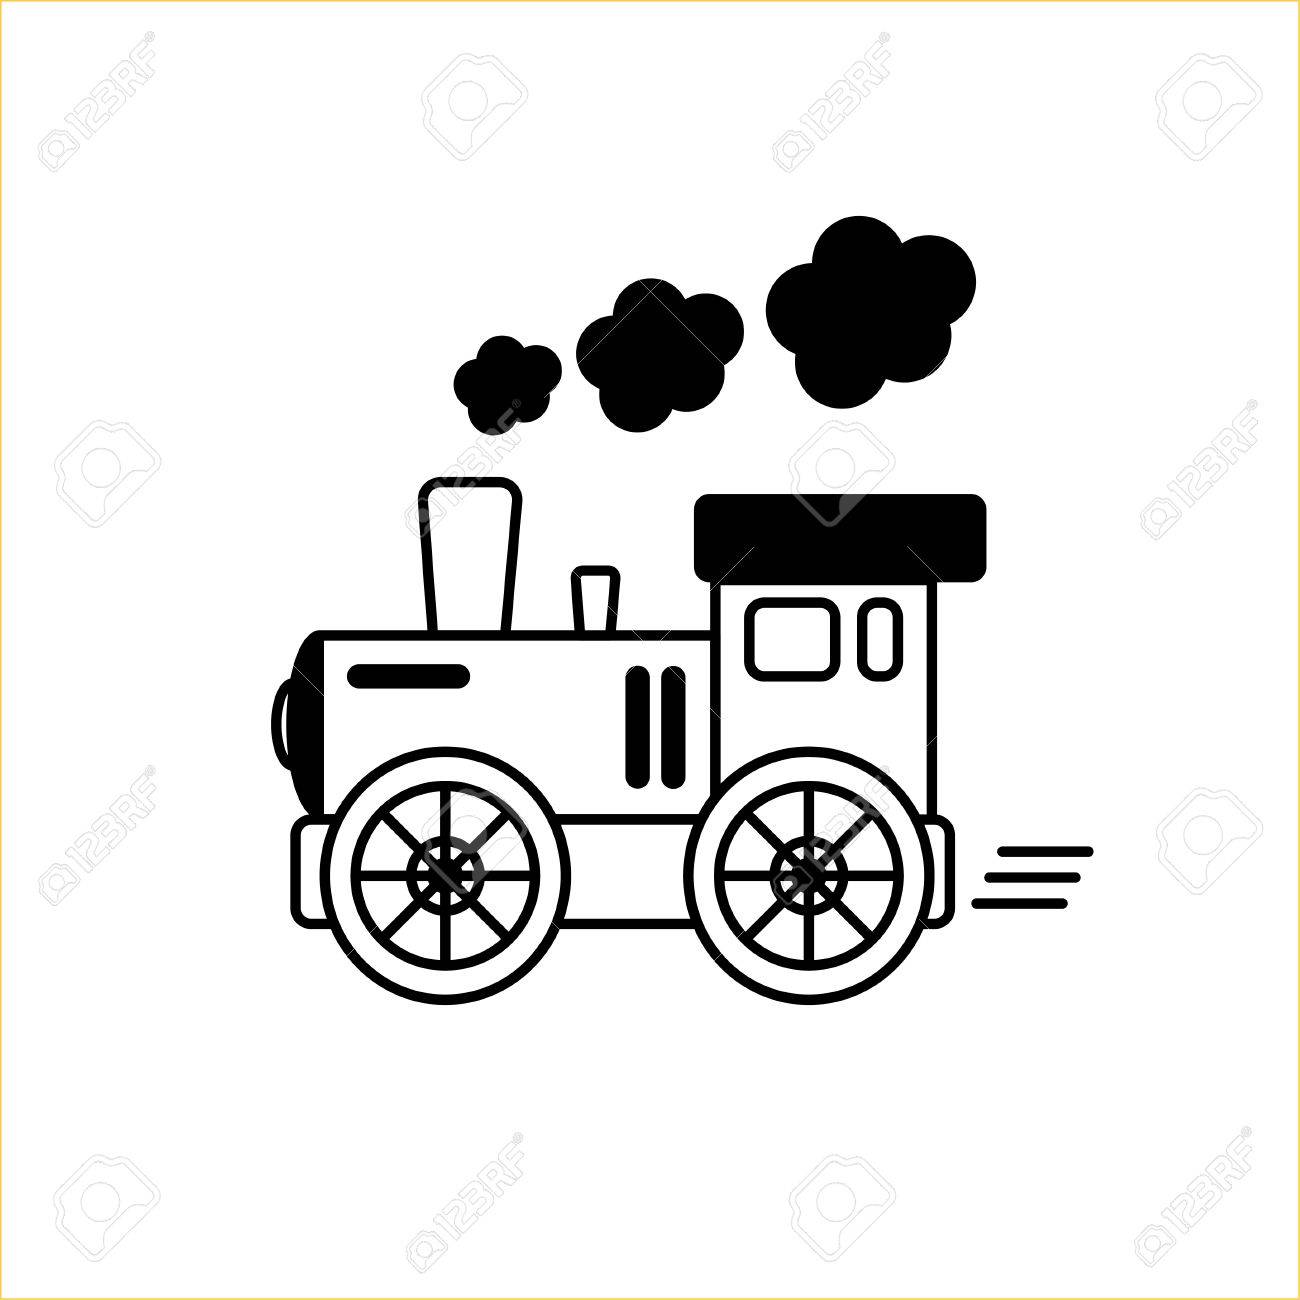 Line Drawn Engine Train Design Element Or Logo Royalty Free Cliparts Vectors And Stock Illustration Image 86727233